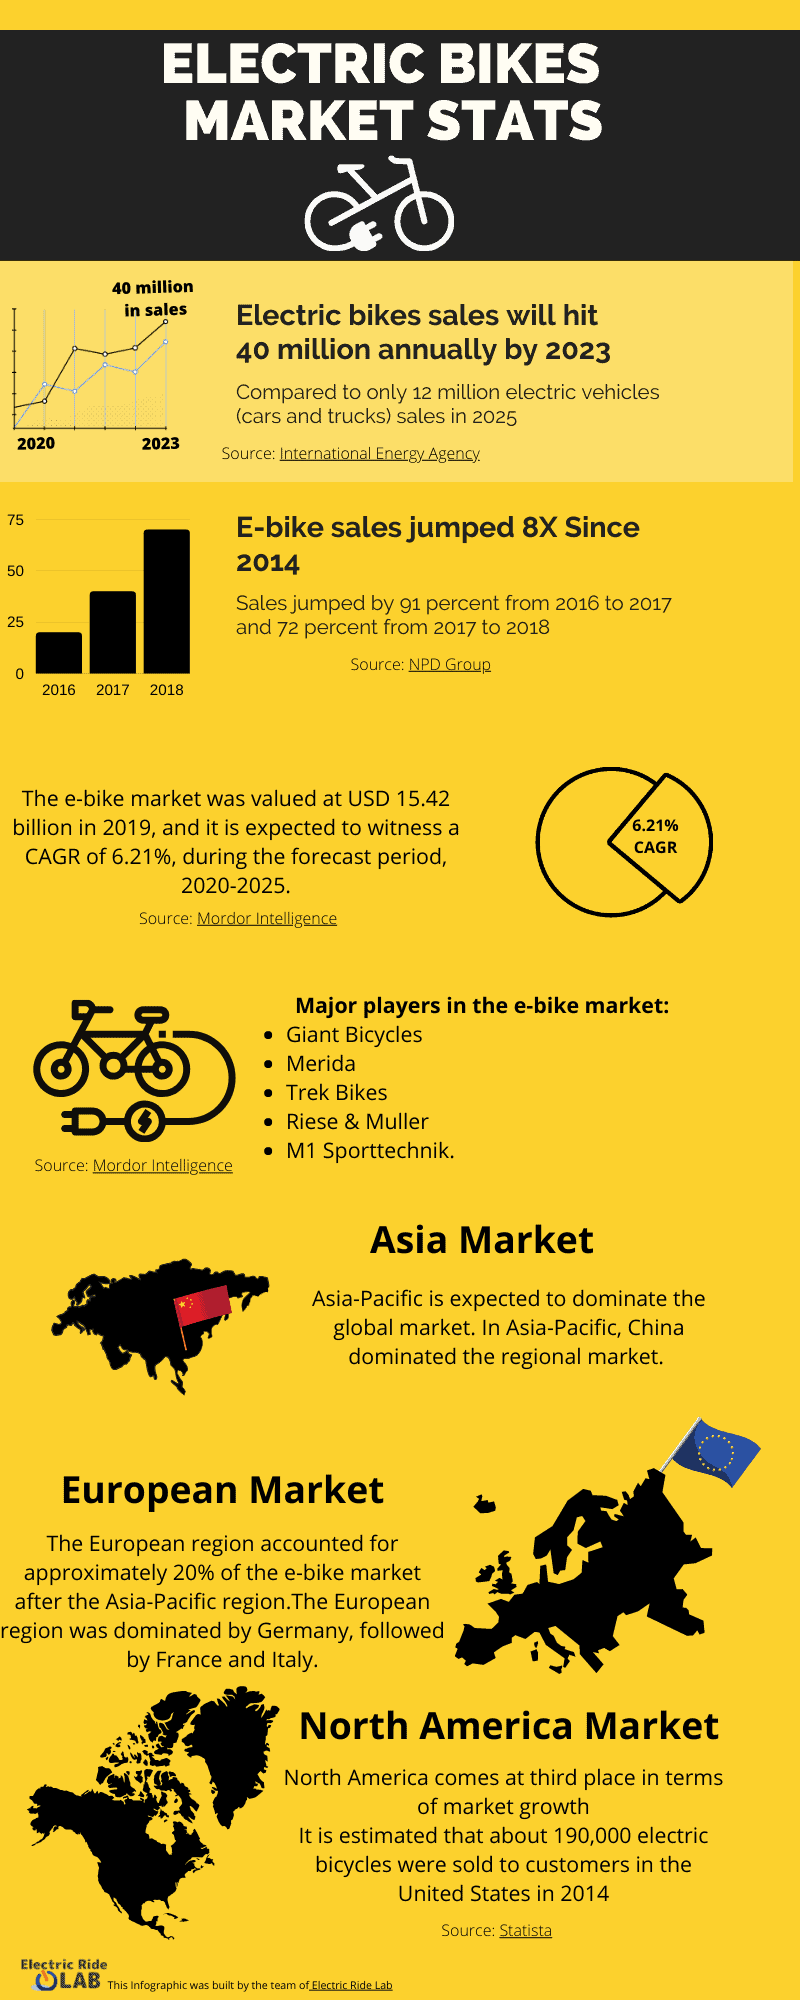 Electric Bikes Market Stats